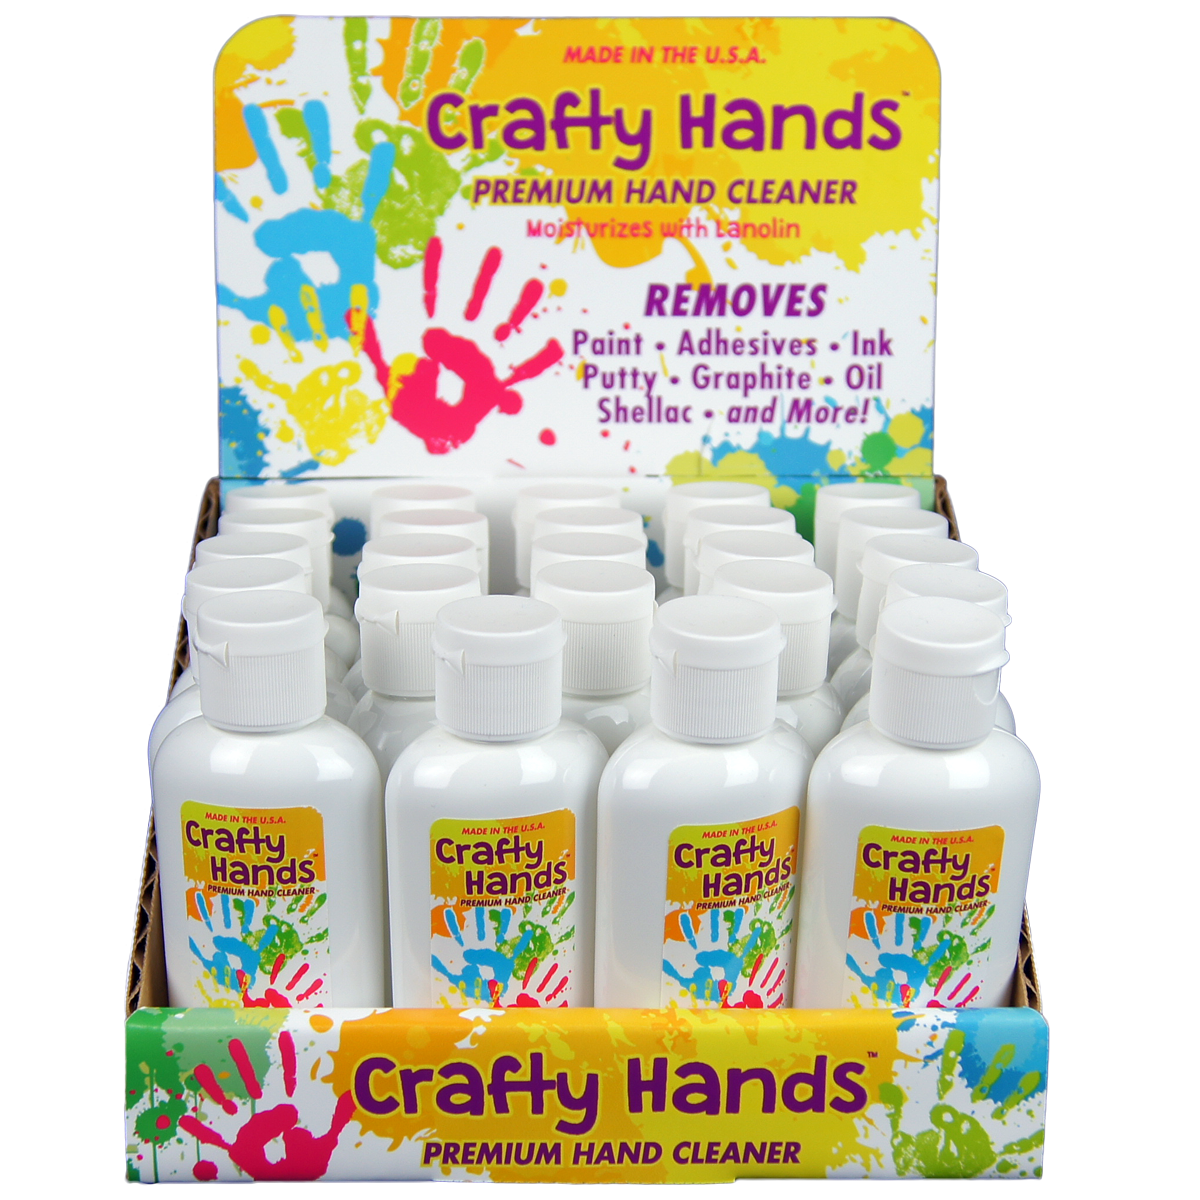 Crafty-Hands-Retail